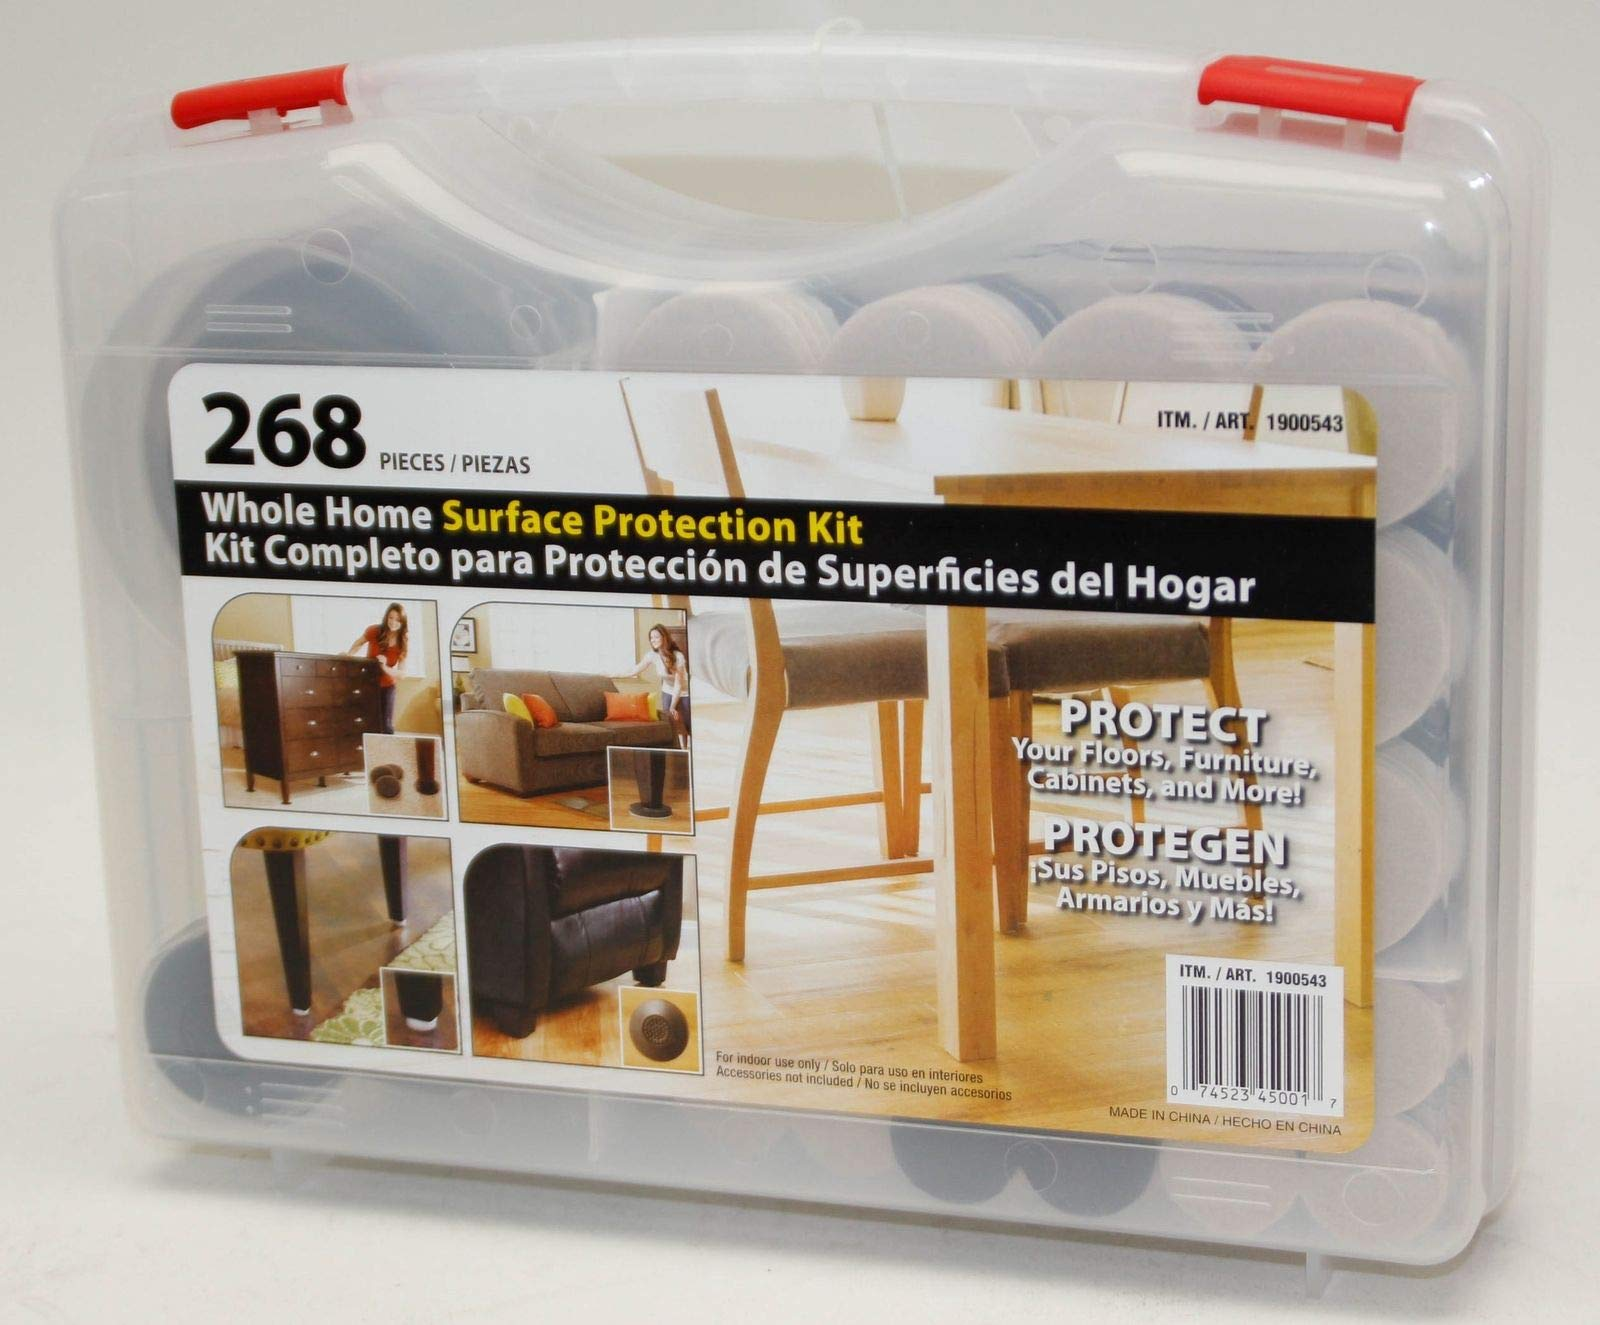 Waxman Whole Home Surface Protection Kit, 268 Pieces